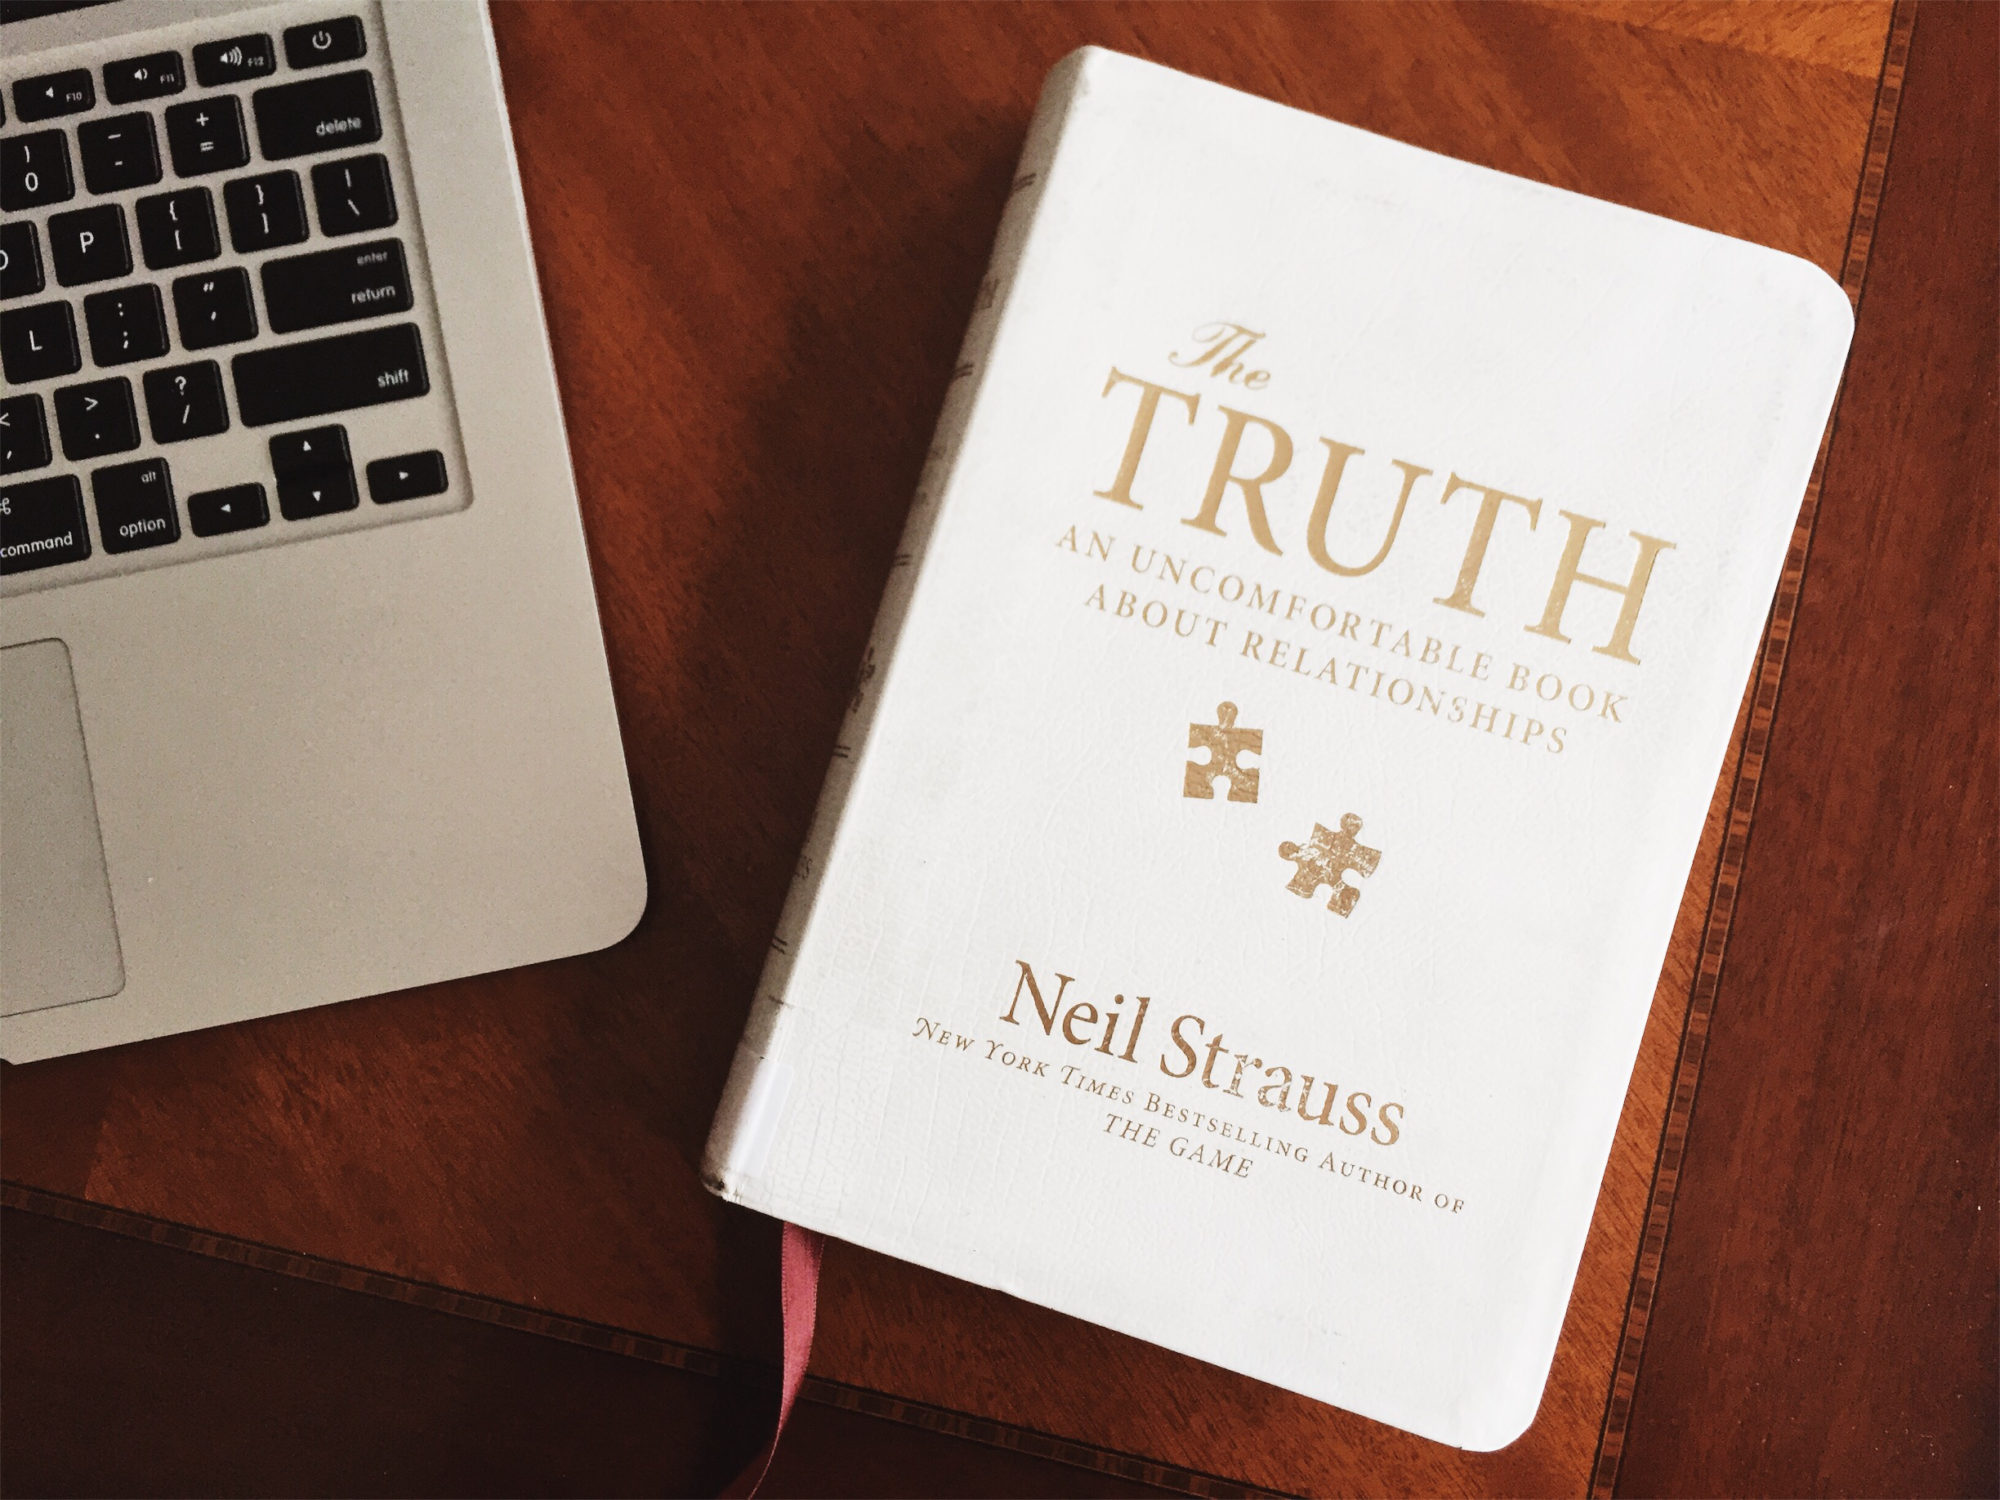 the truth about relationships book